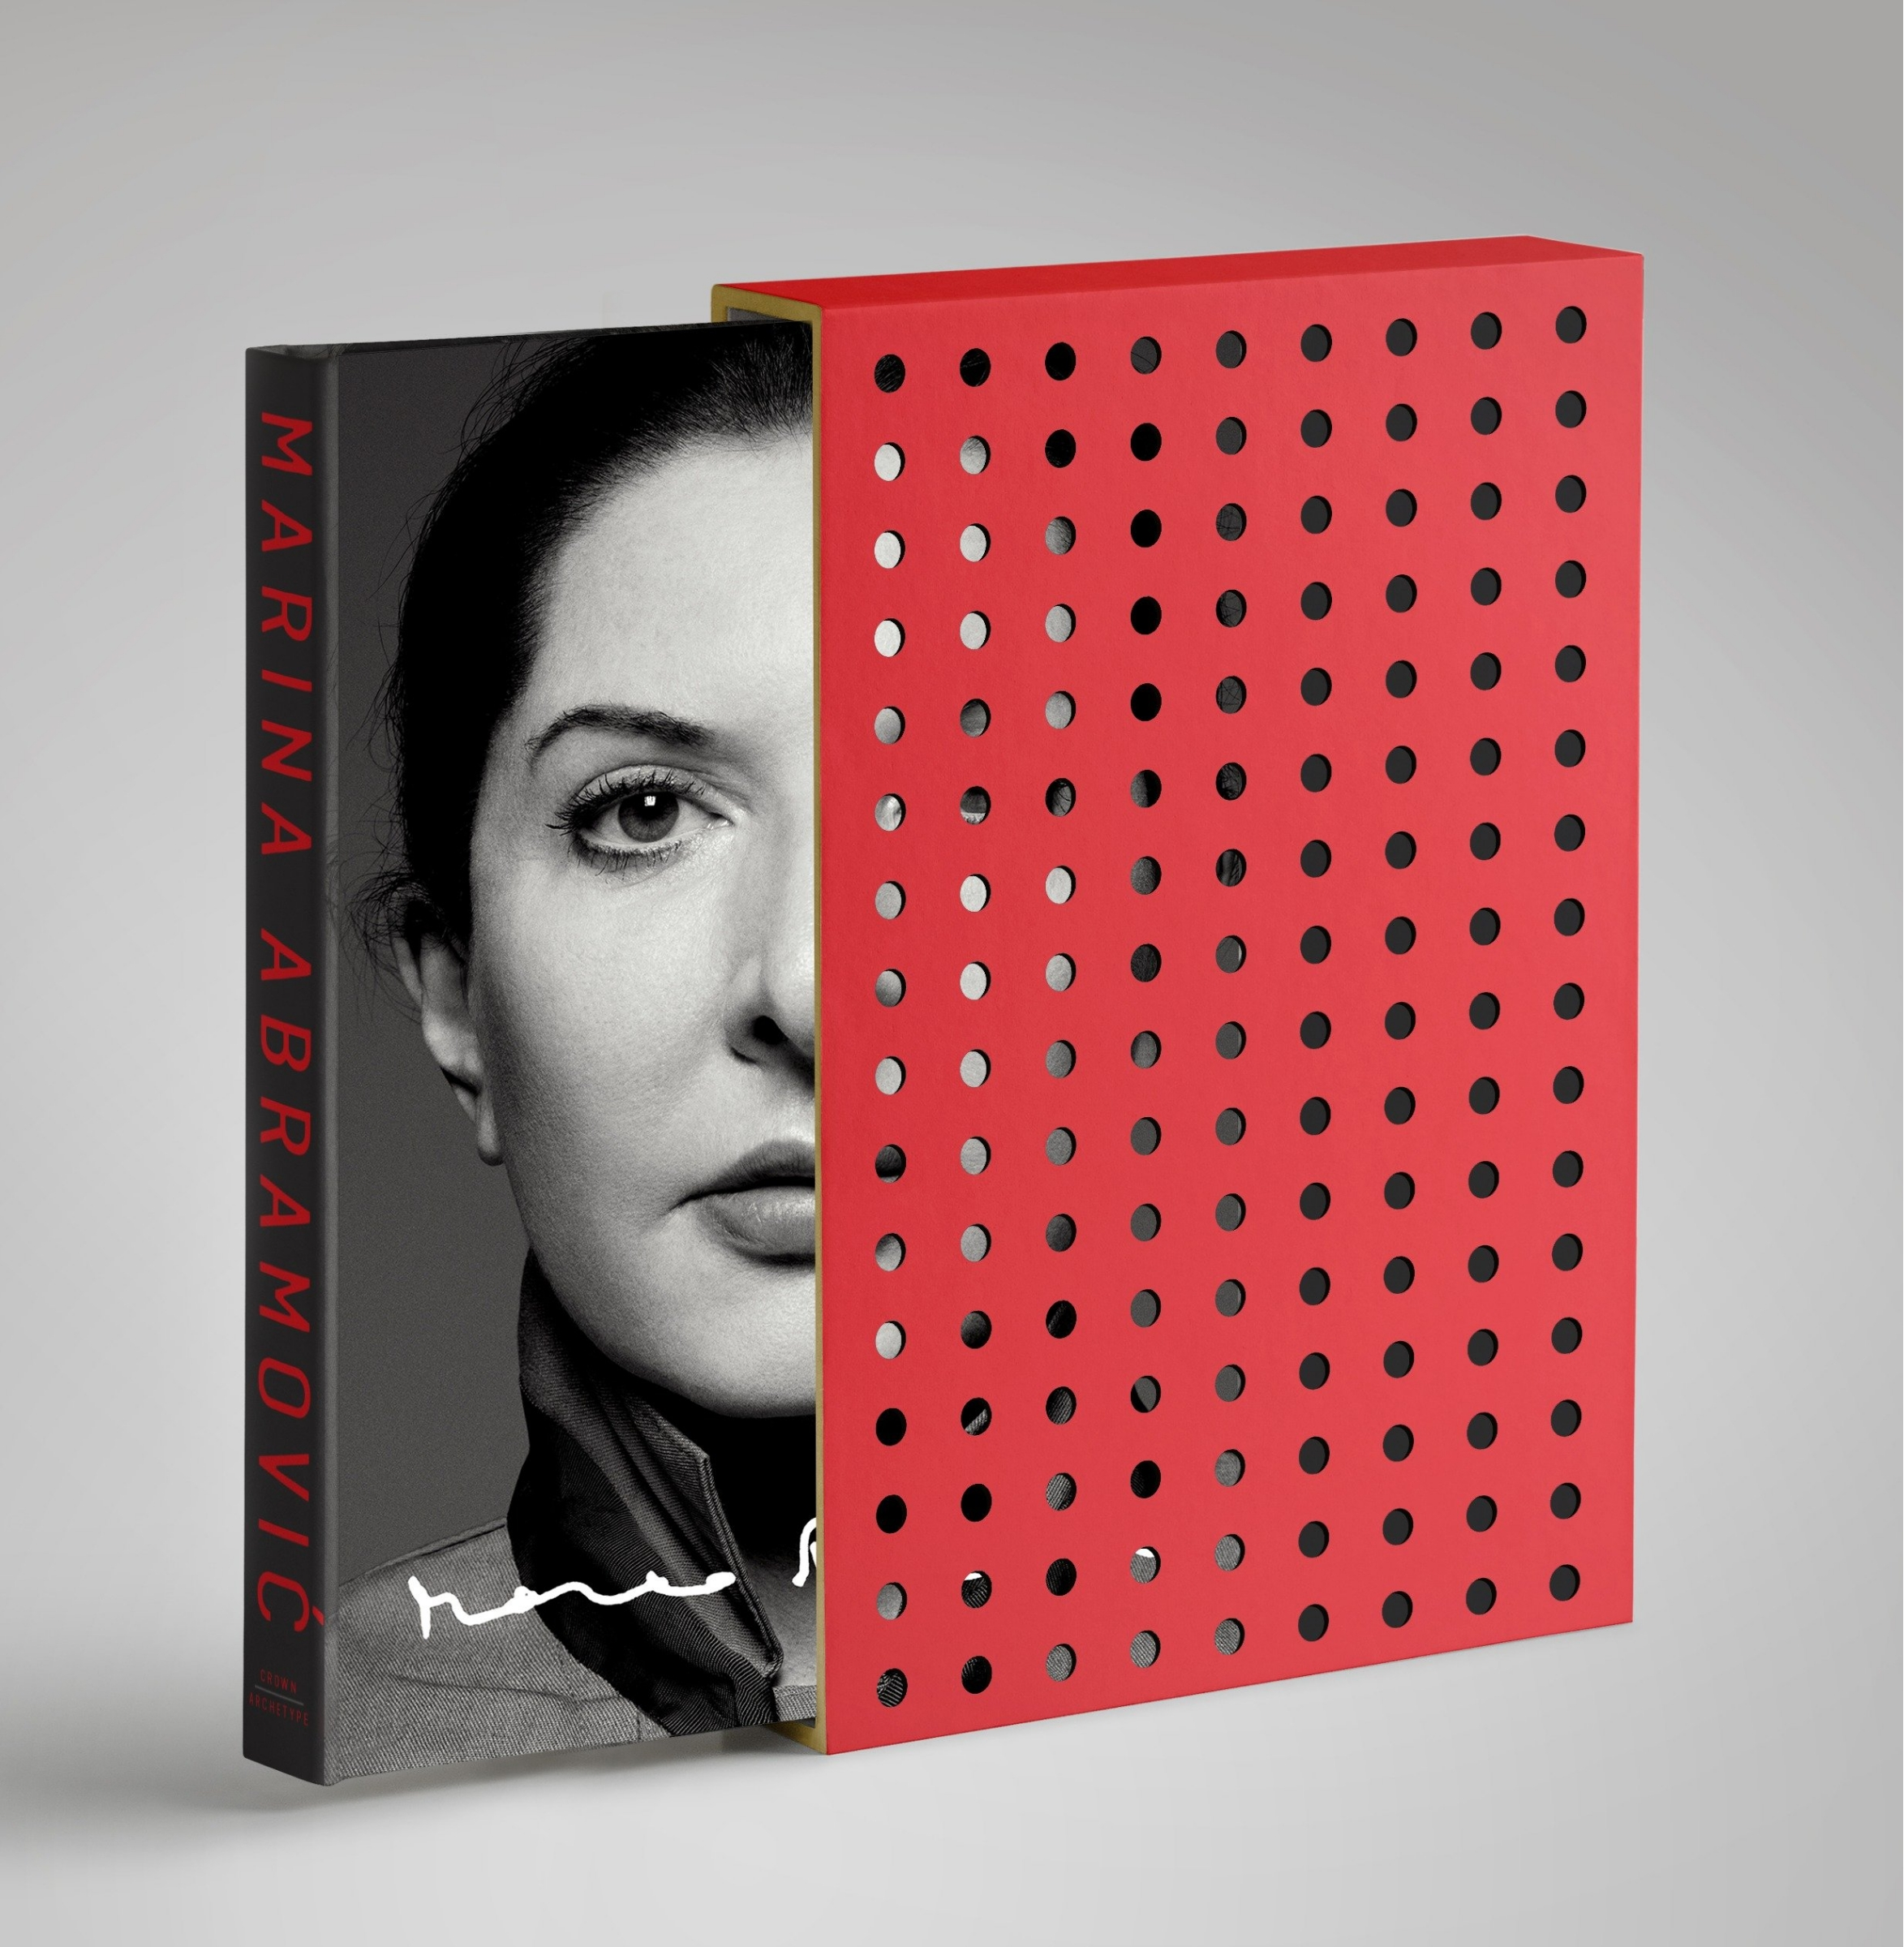 Book Walk Through Walls Signed And Numbered Collector's Edition by Marina Abramovic